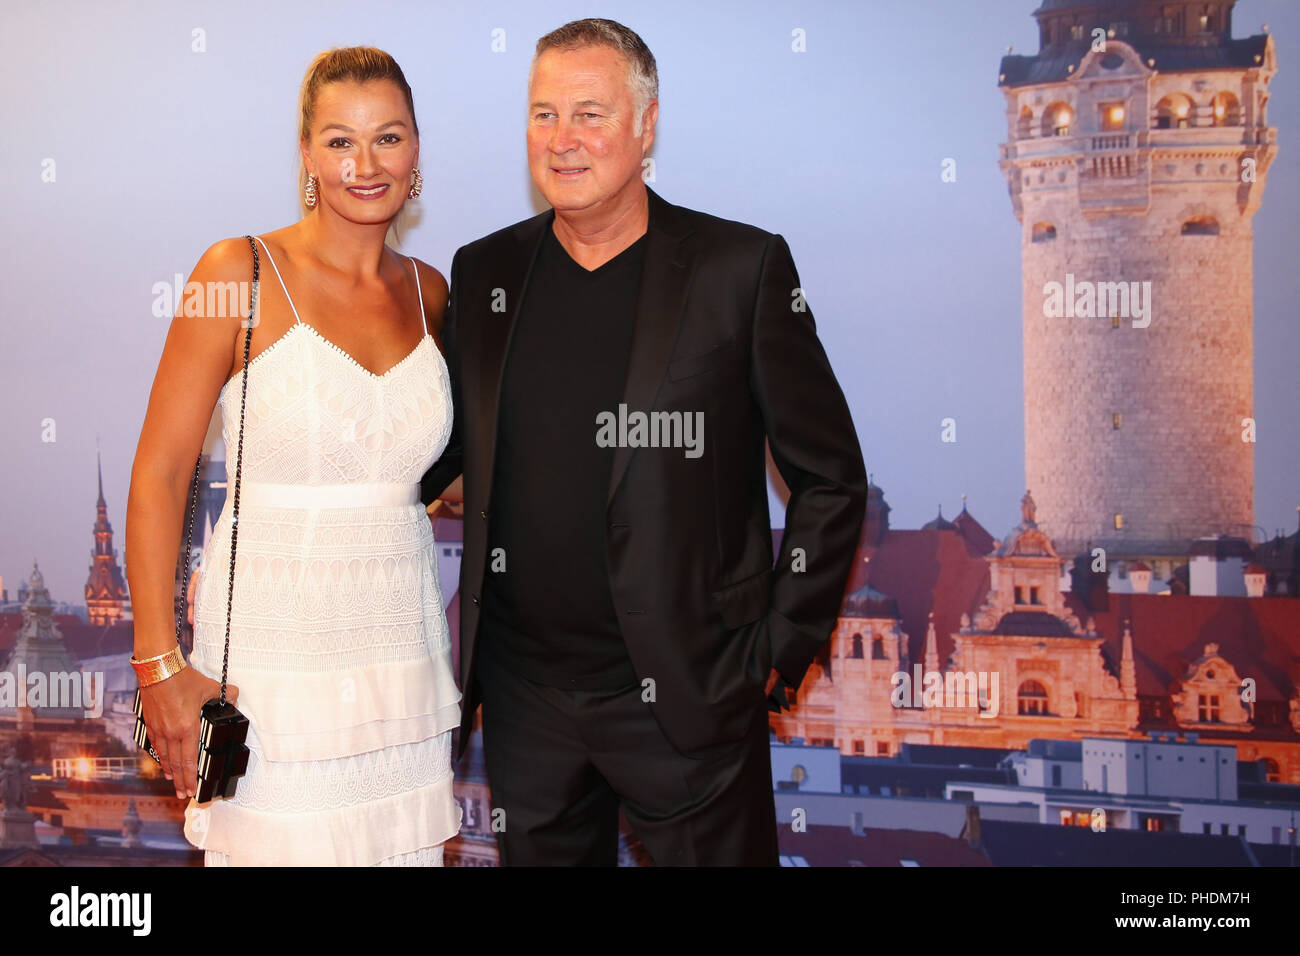 Franziska van Almsick and significant other Jürgen B. Harder - Stock Image